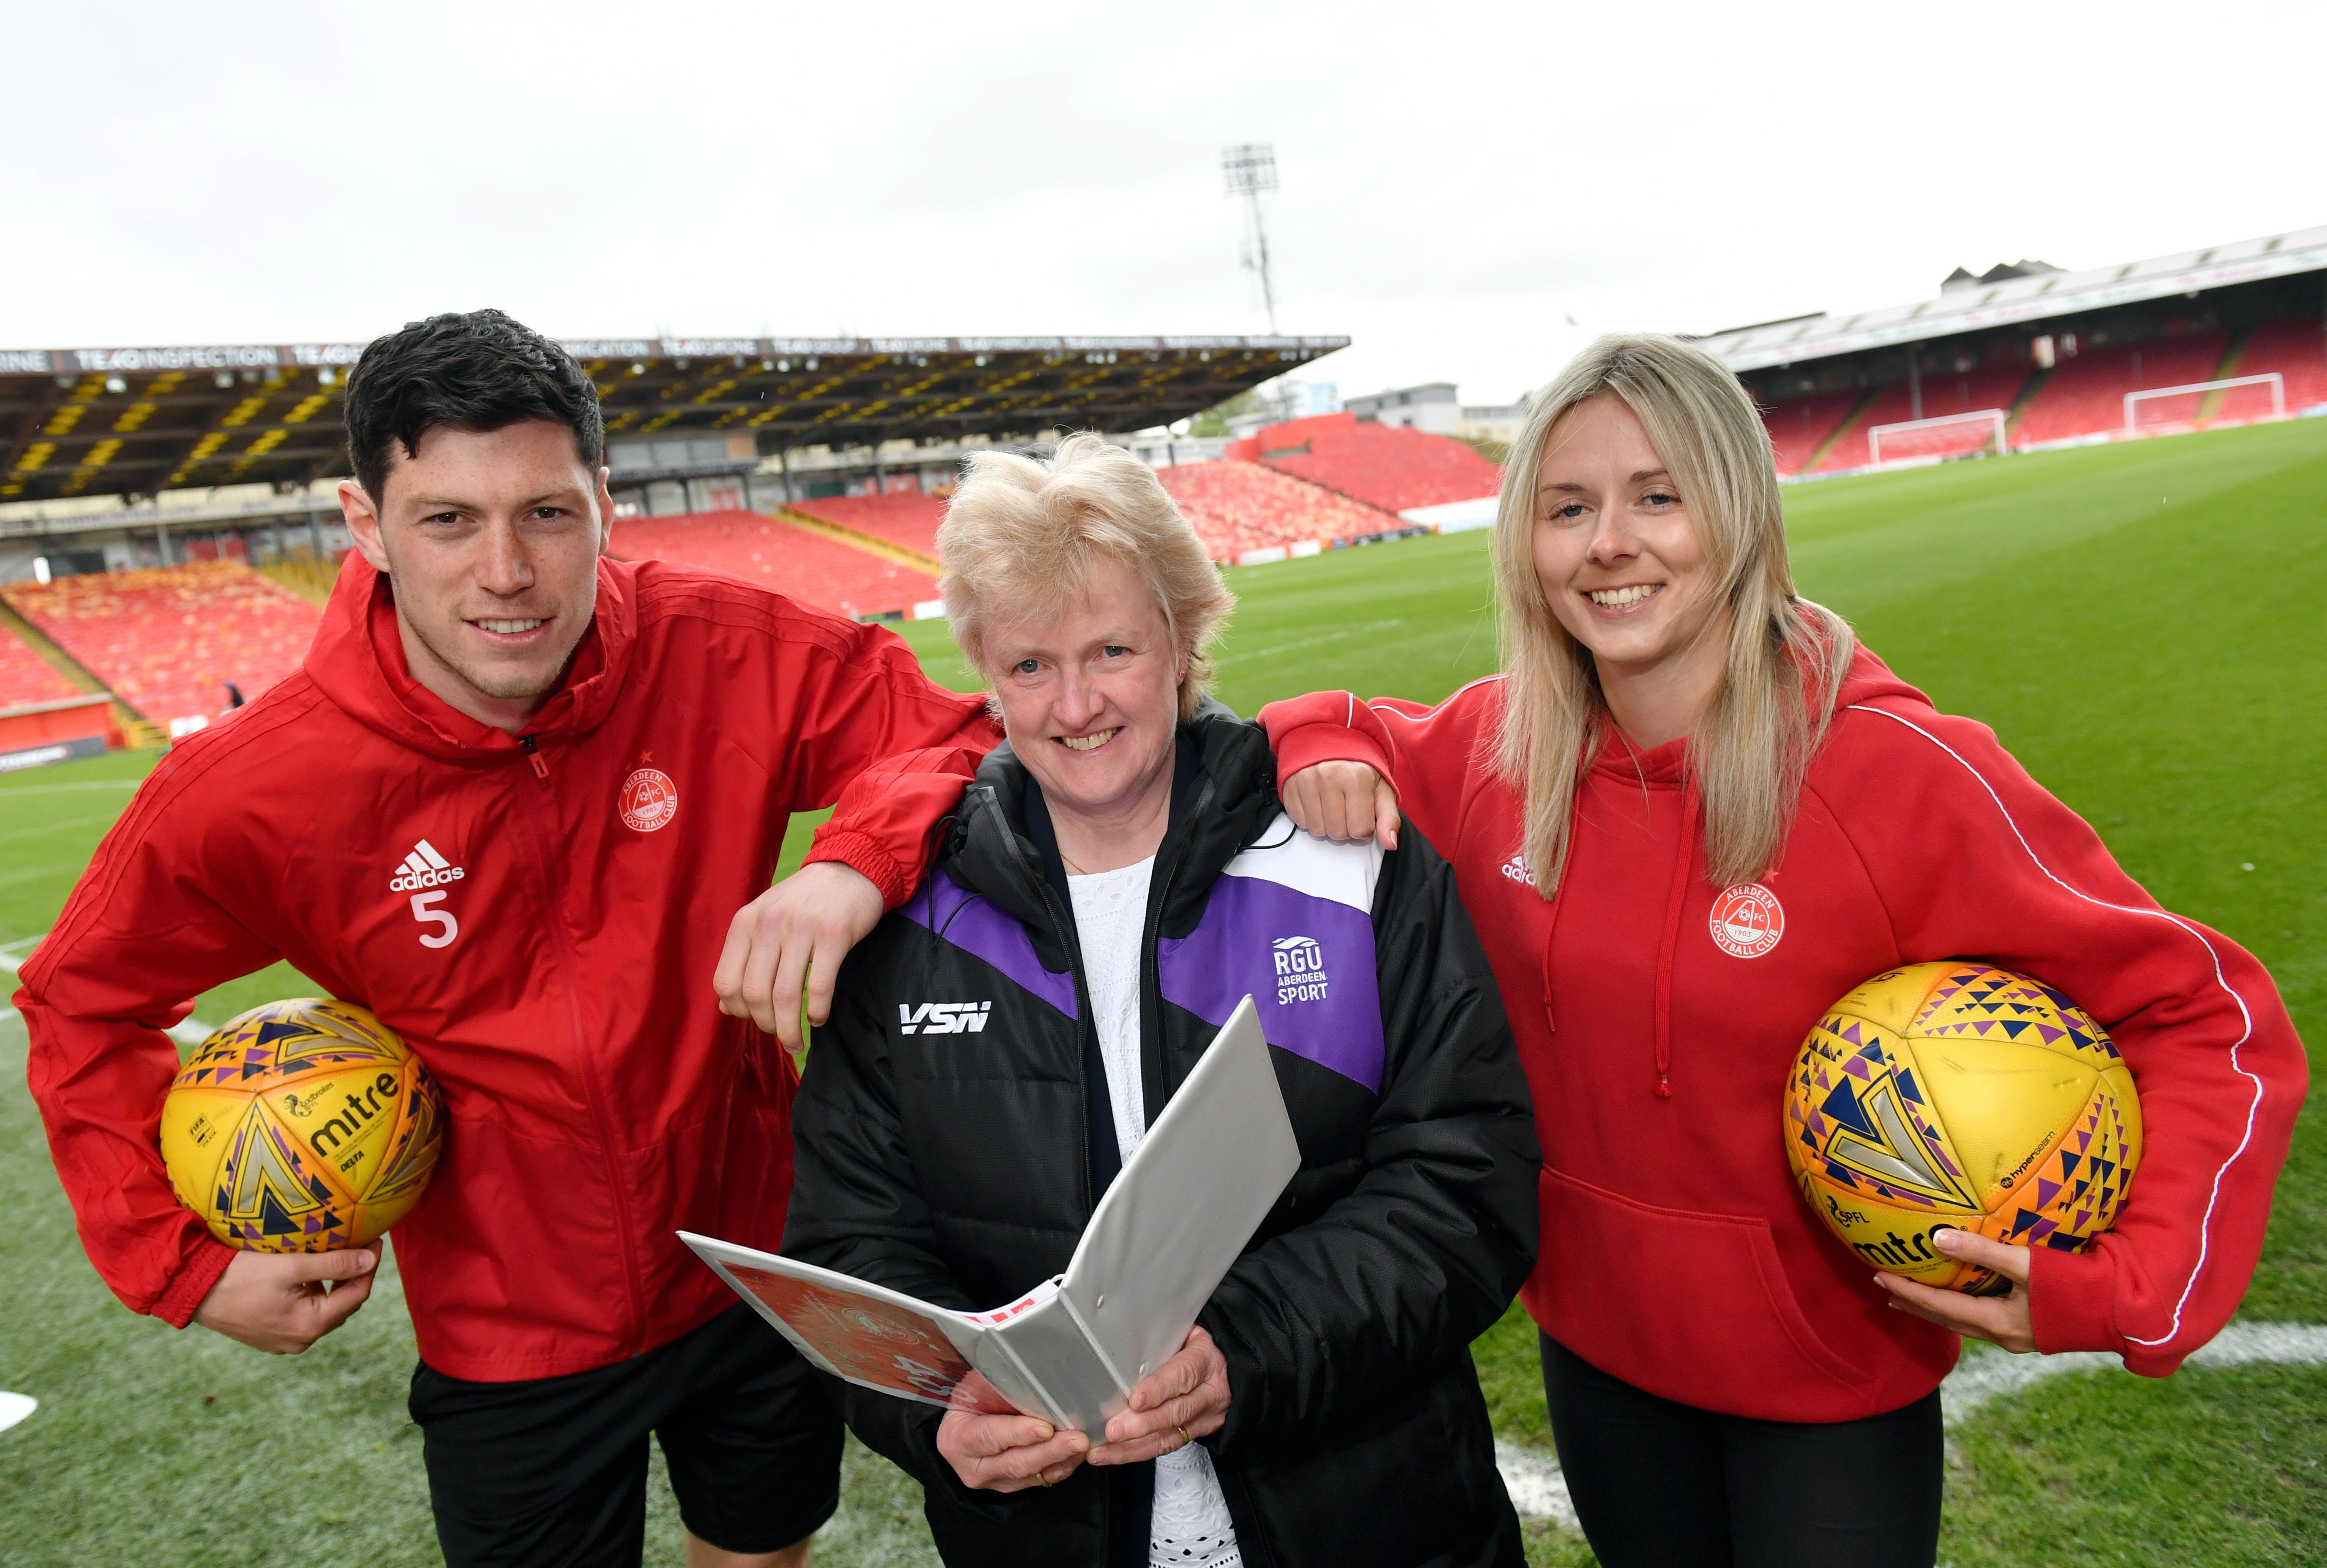 Pictured - L-R Scott McKenna (player), Prof Elizabeth Hancock (RGU) and Loren Campbell (player).      Picture by Kami Thomson